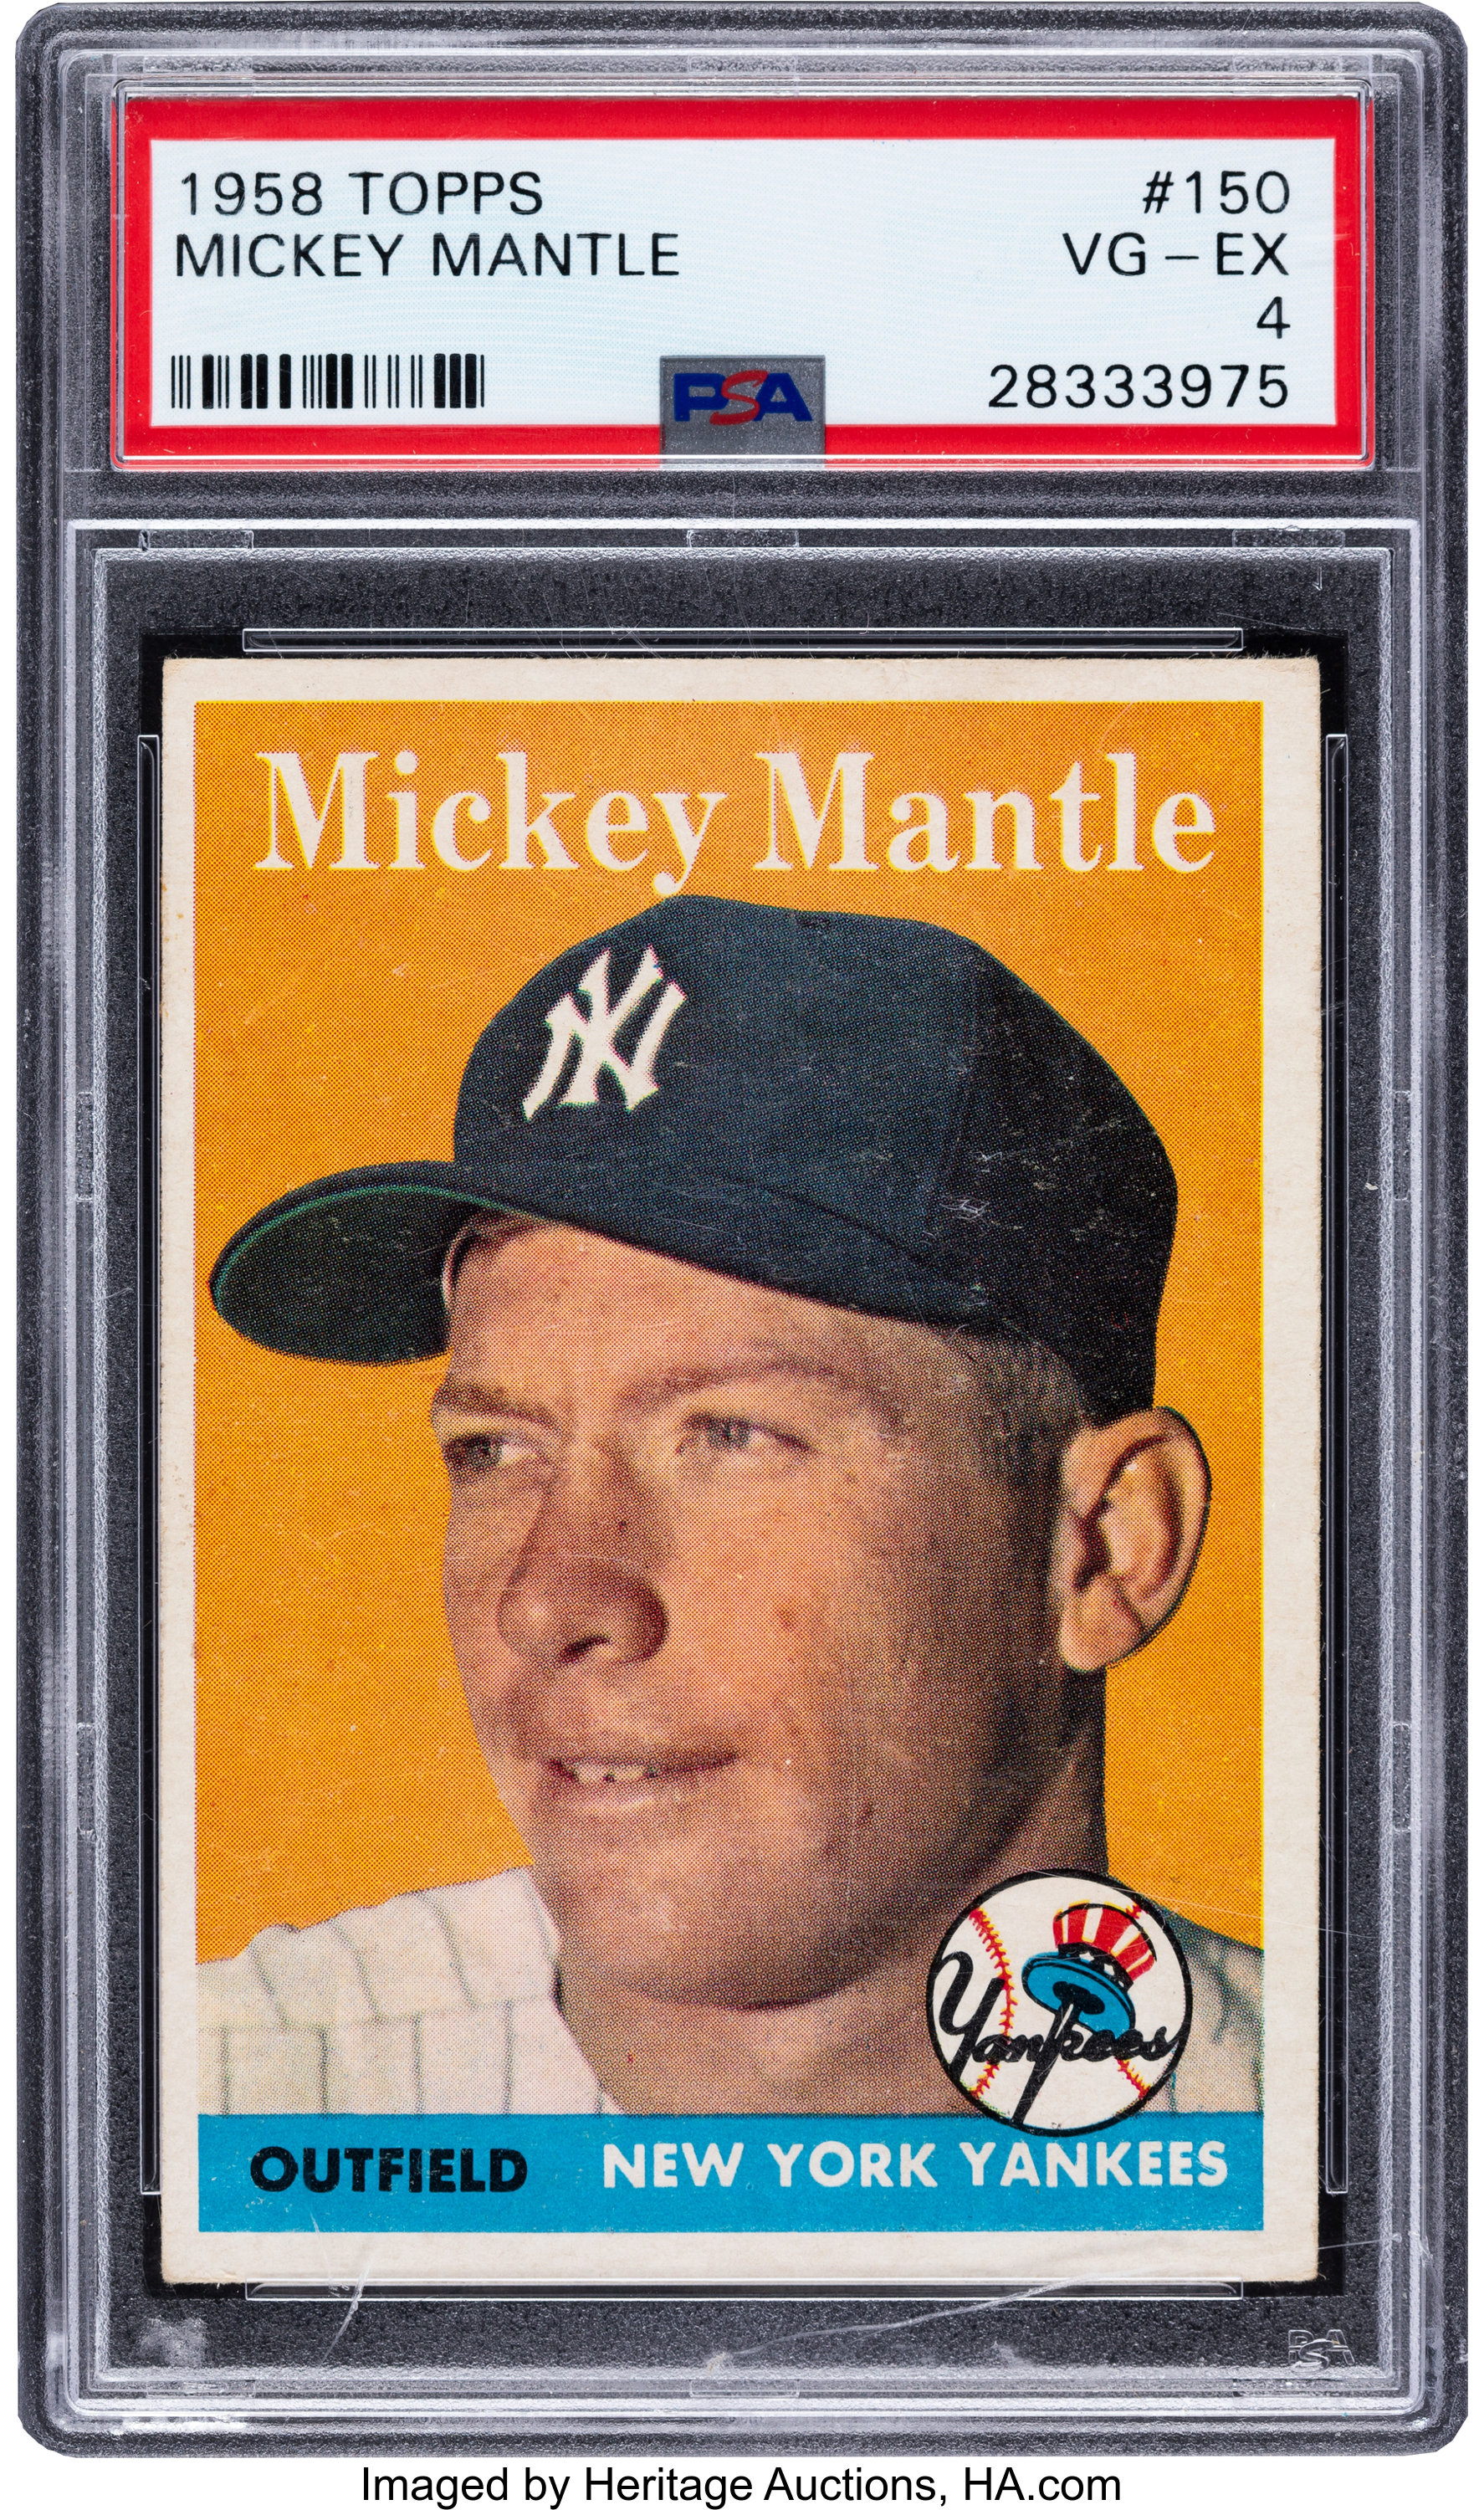 1958 Topps Mickey Mantle 150 Psa Vg Ex 4 Baseball Cards Lot